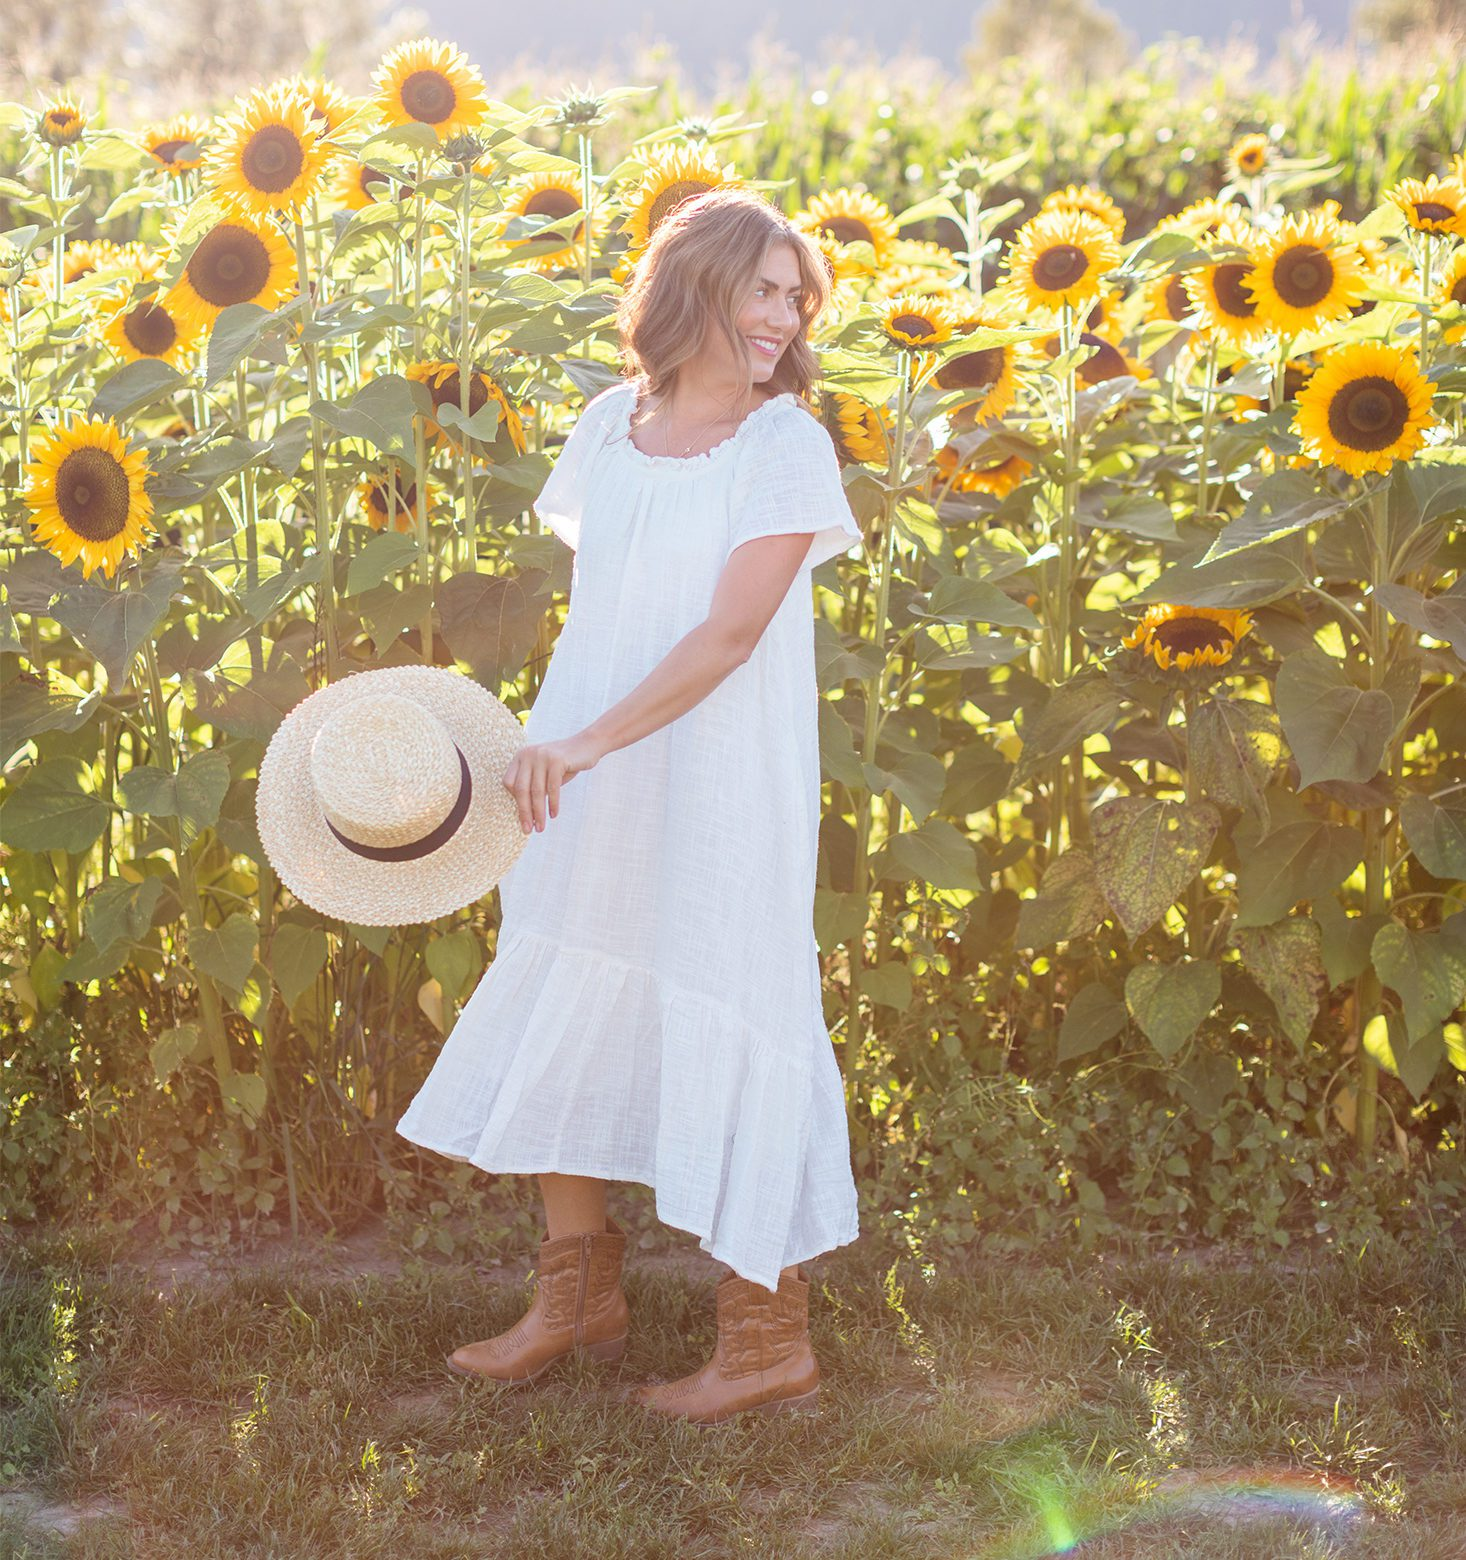 Jillian Harris in a White Dress with a Field of Sunflowers behind her